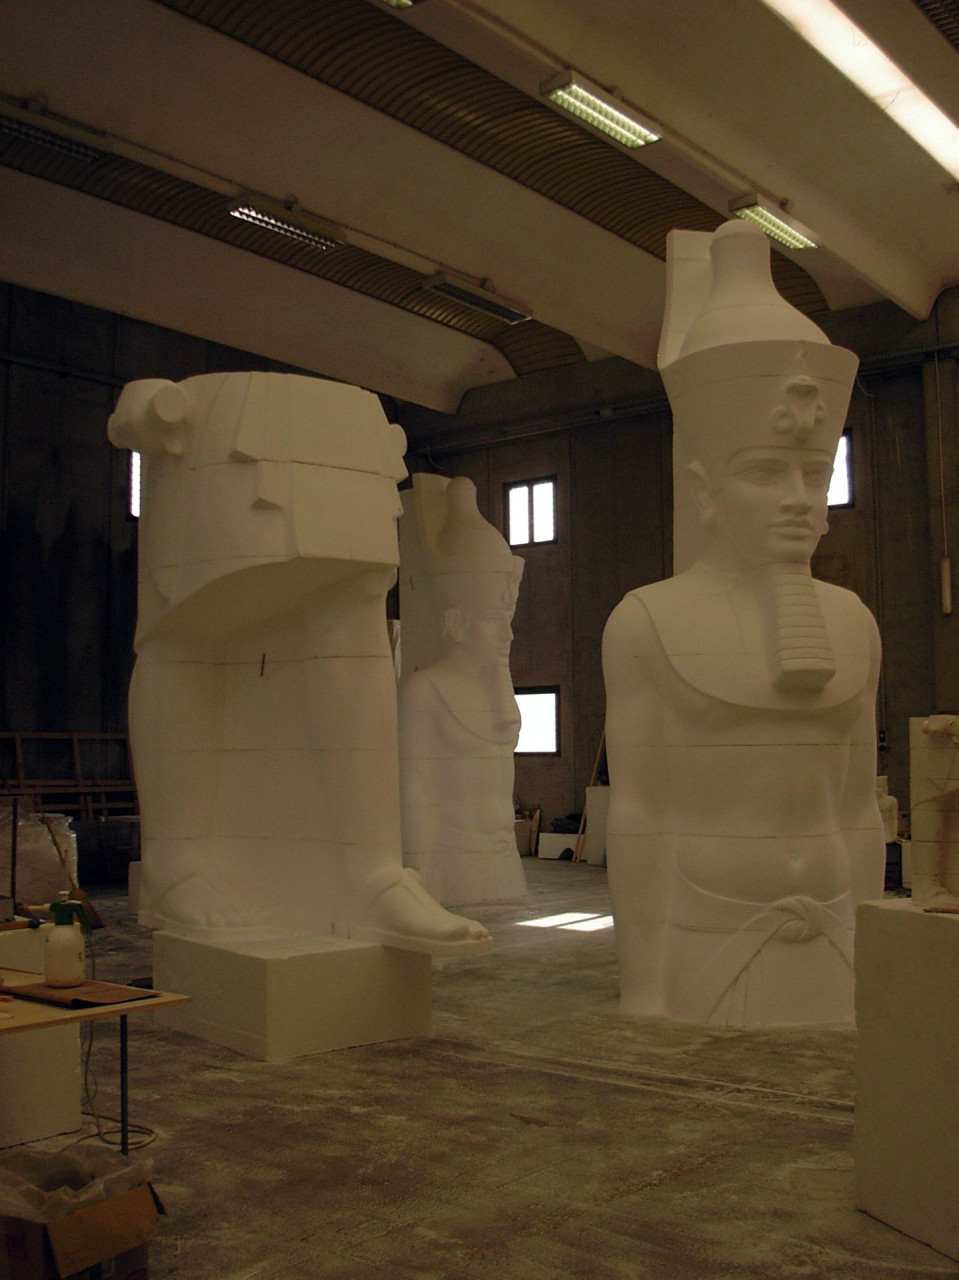 The main Statue inside the workshop during the sculpting job